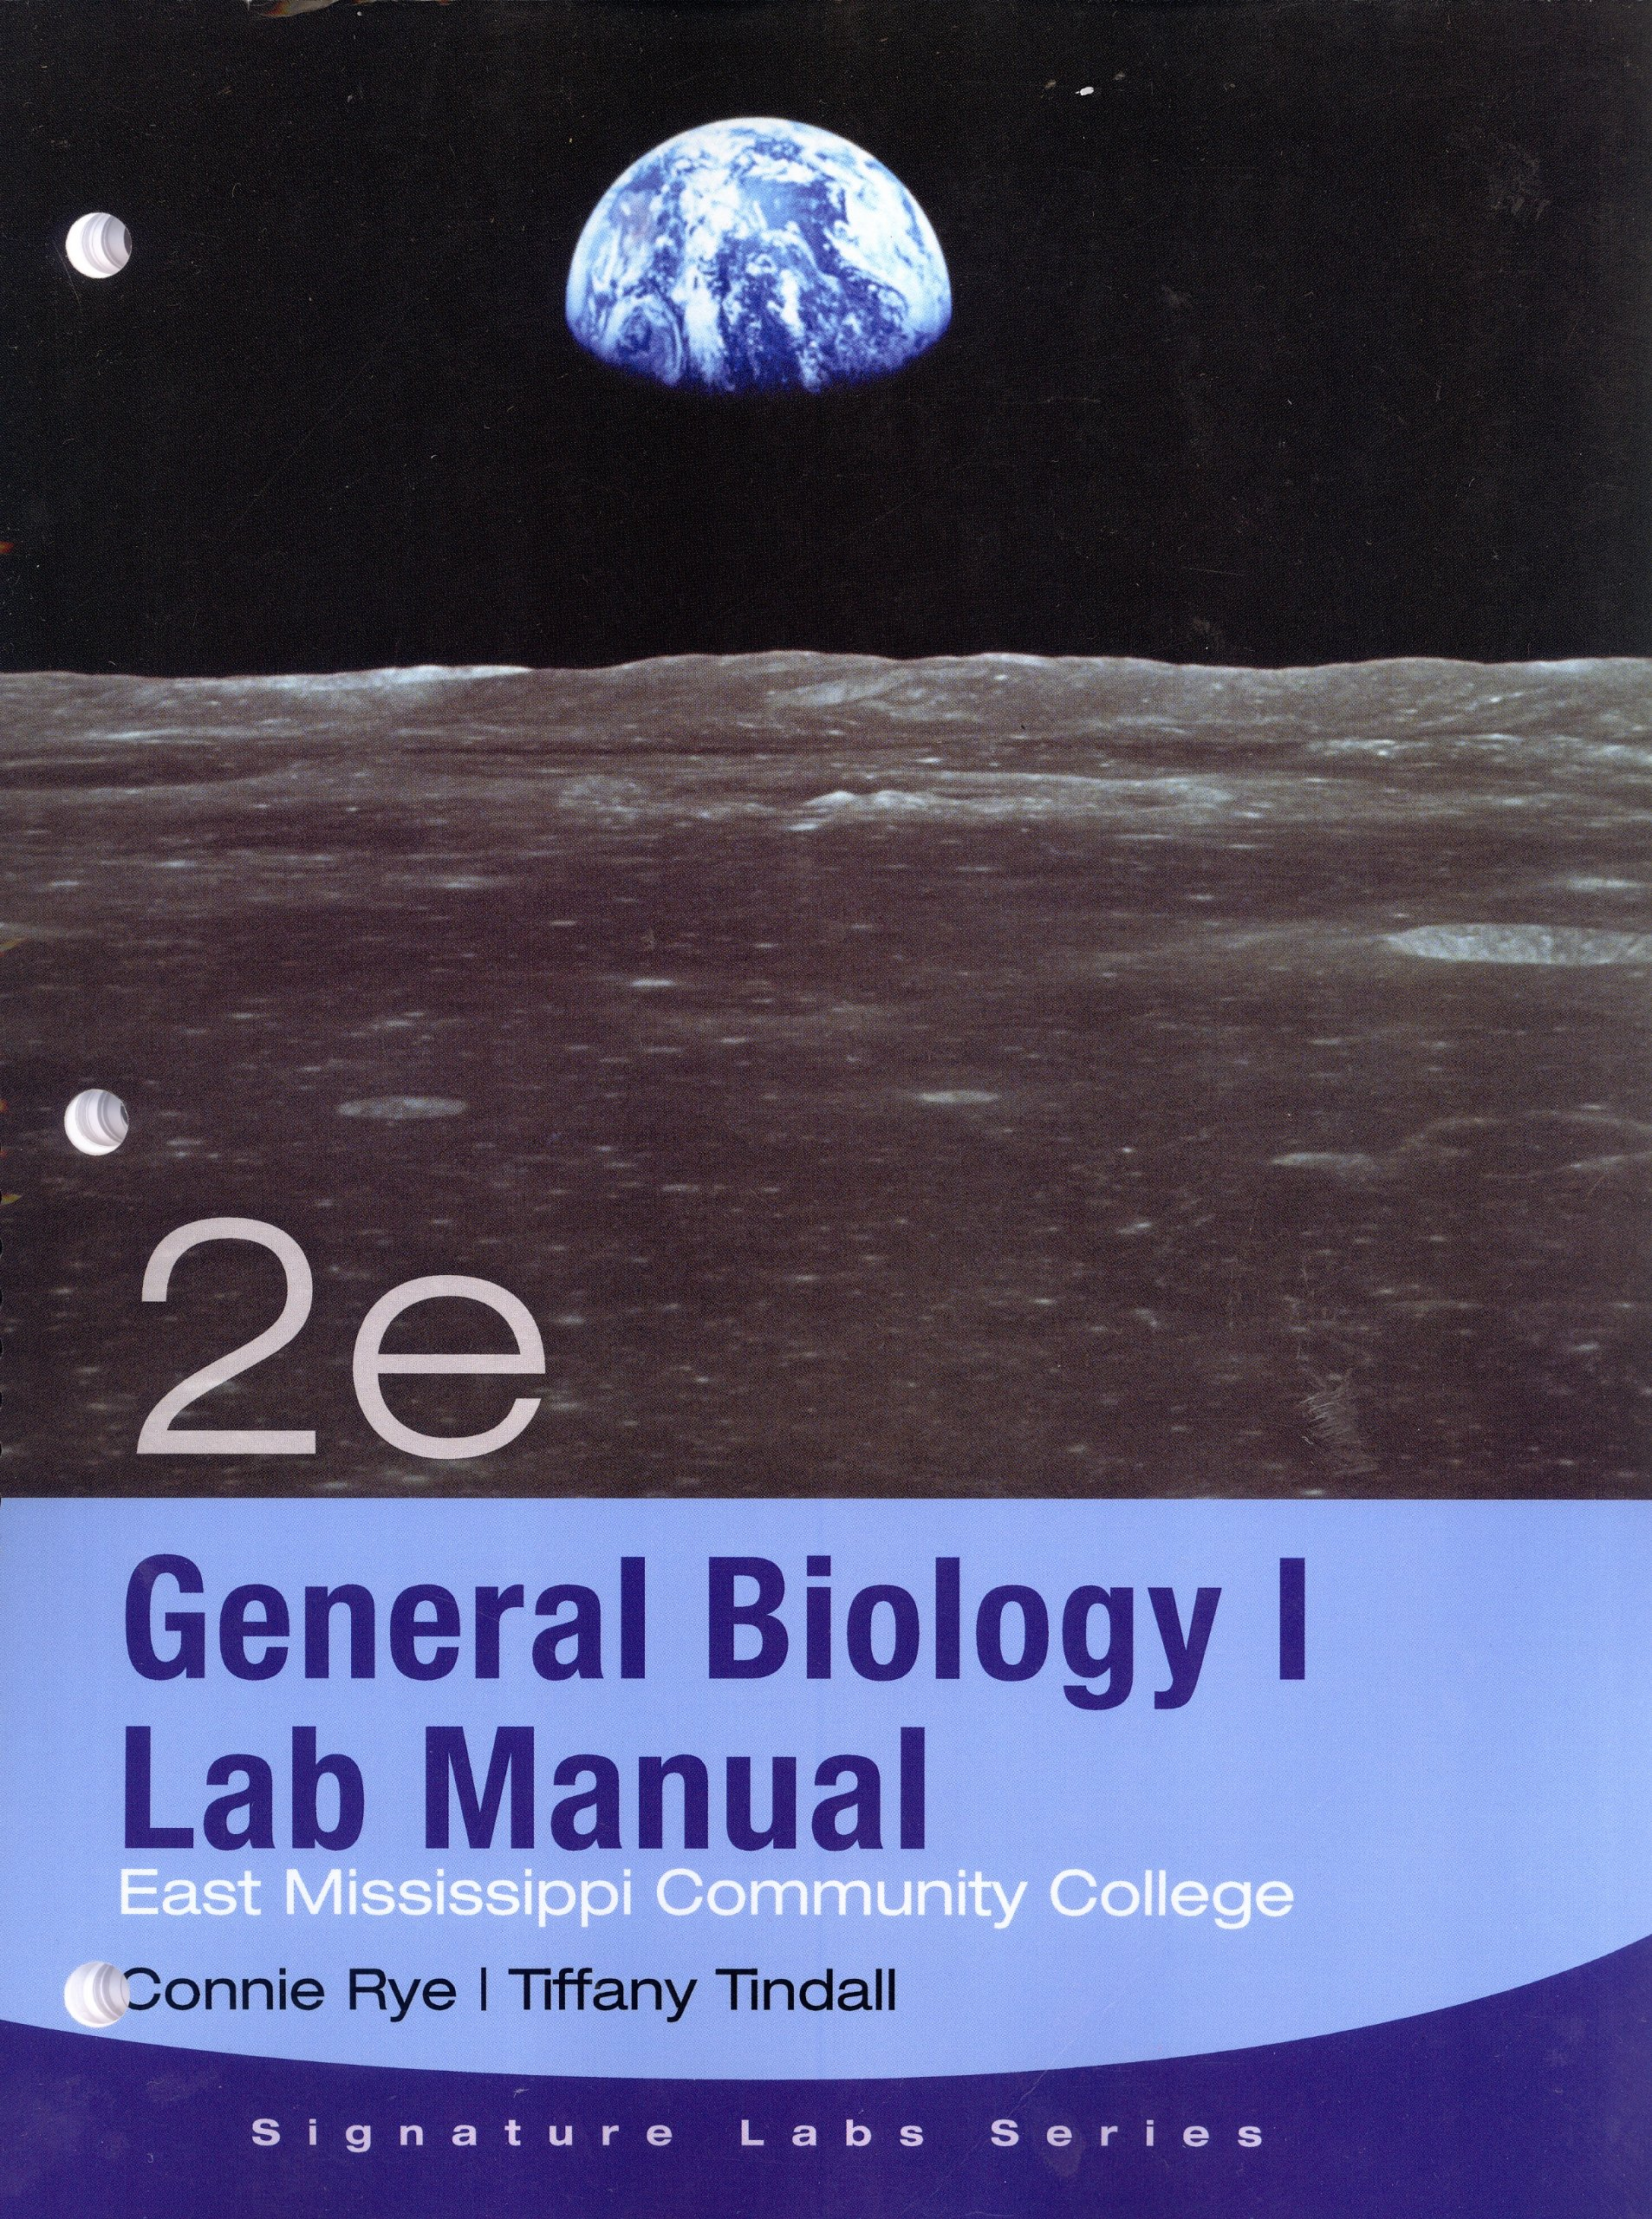 General Biology I Lab Manual (East Mississippi Community College, Signature  Labs Series): Connie Rye, Tiffany Tindall: 9781111523022: Amazon.com: Books